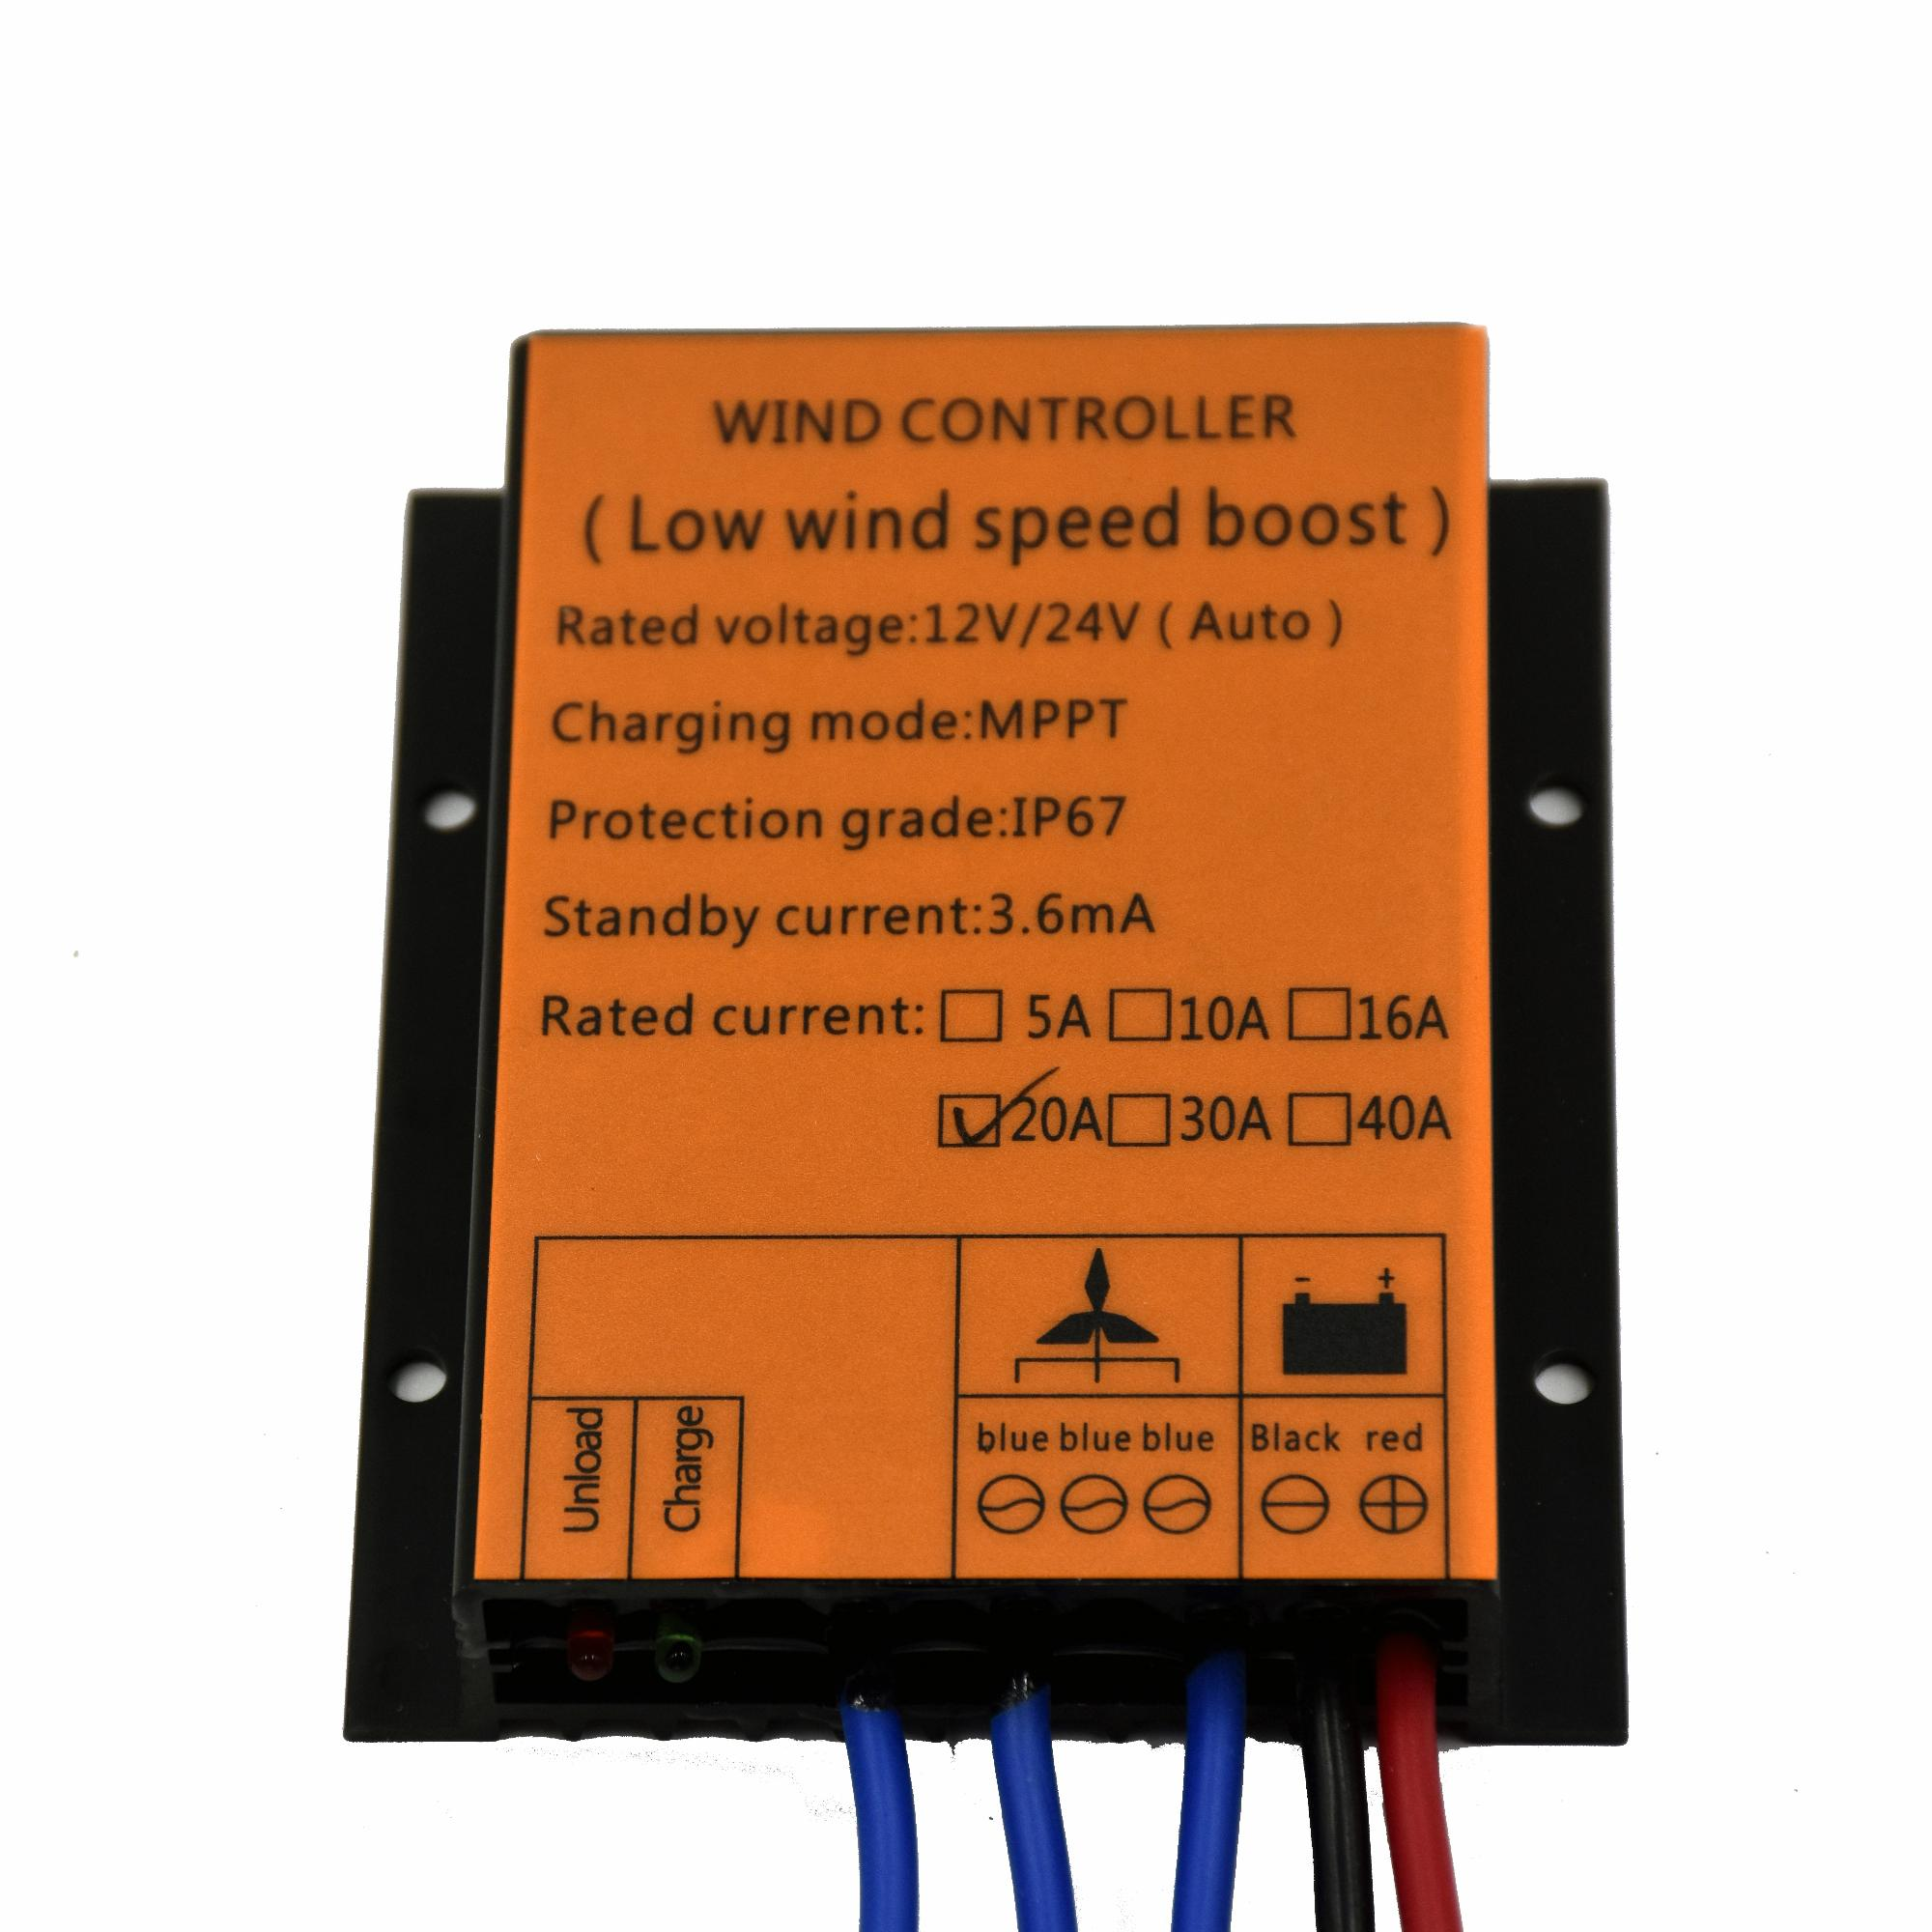 100W~720W 10A/16A/20A/30A MPPT/BOOST Wind Charge Controller For Wind Turbine Generator, 12V/24V Self-adaptive, Water Proof